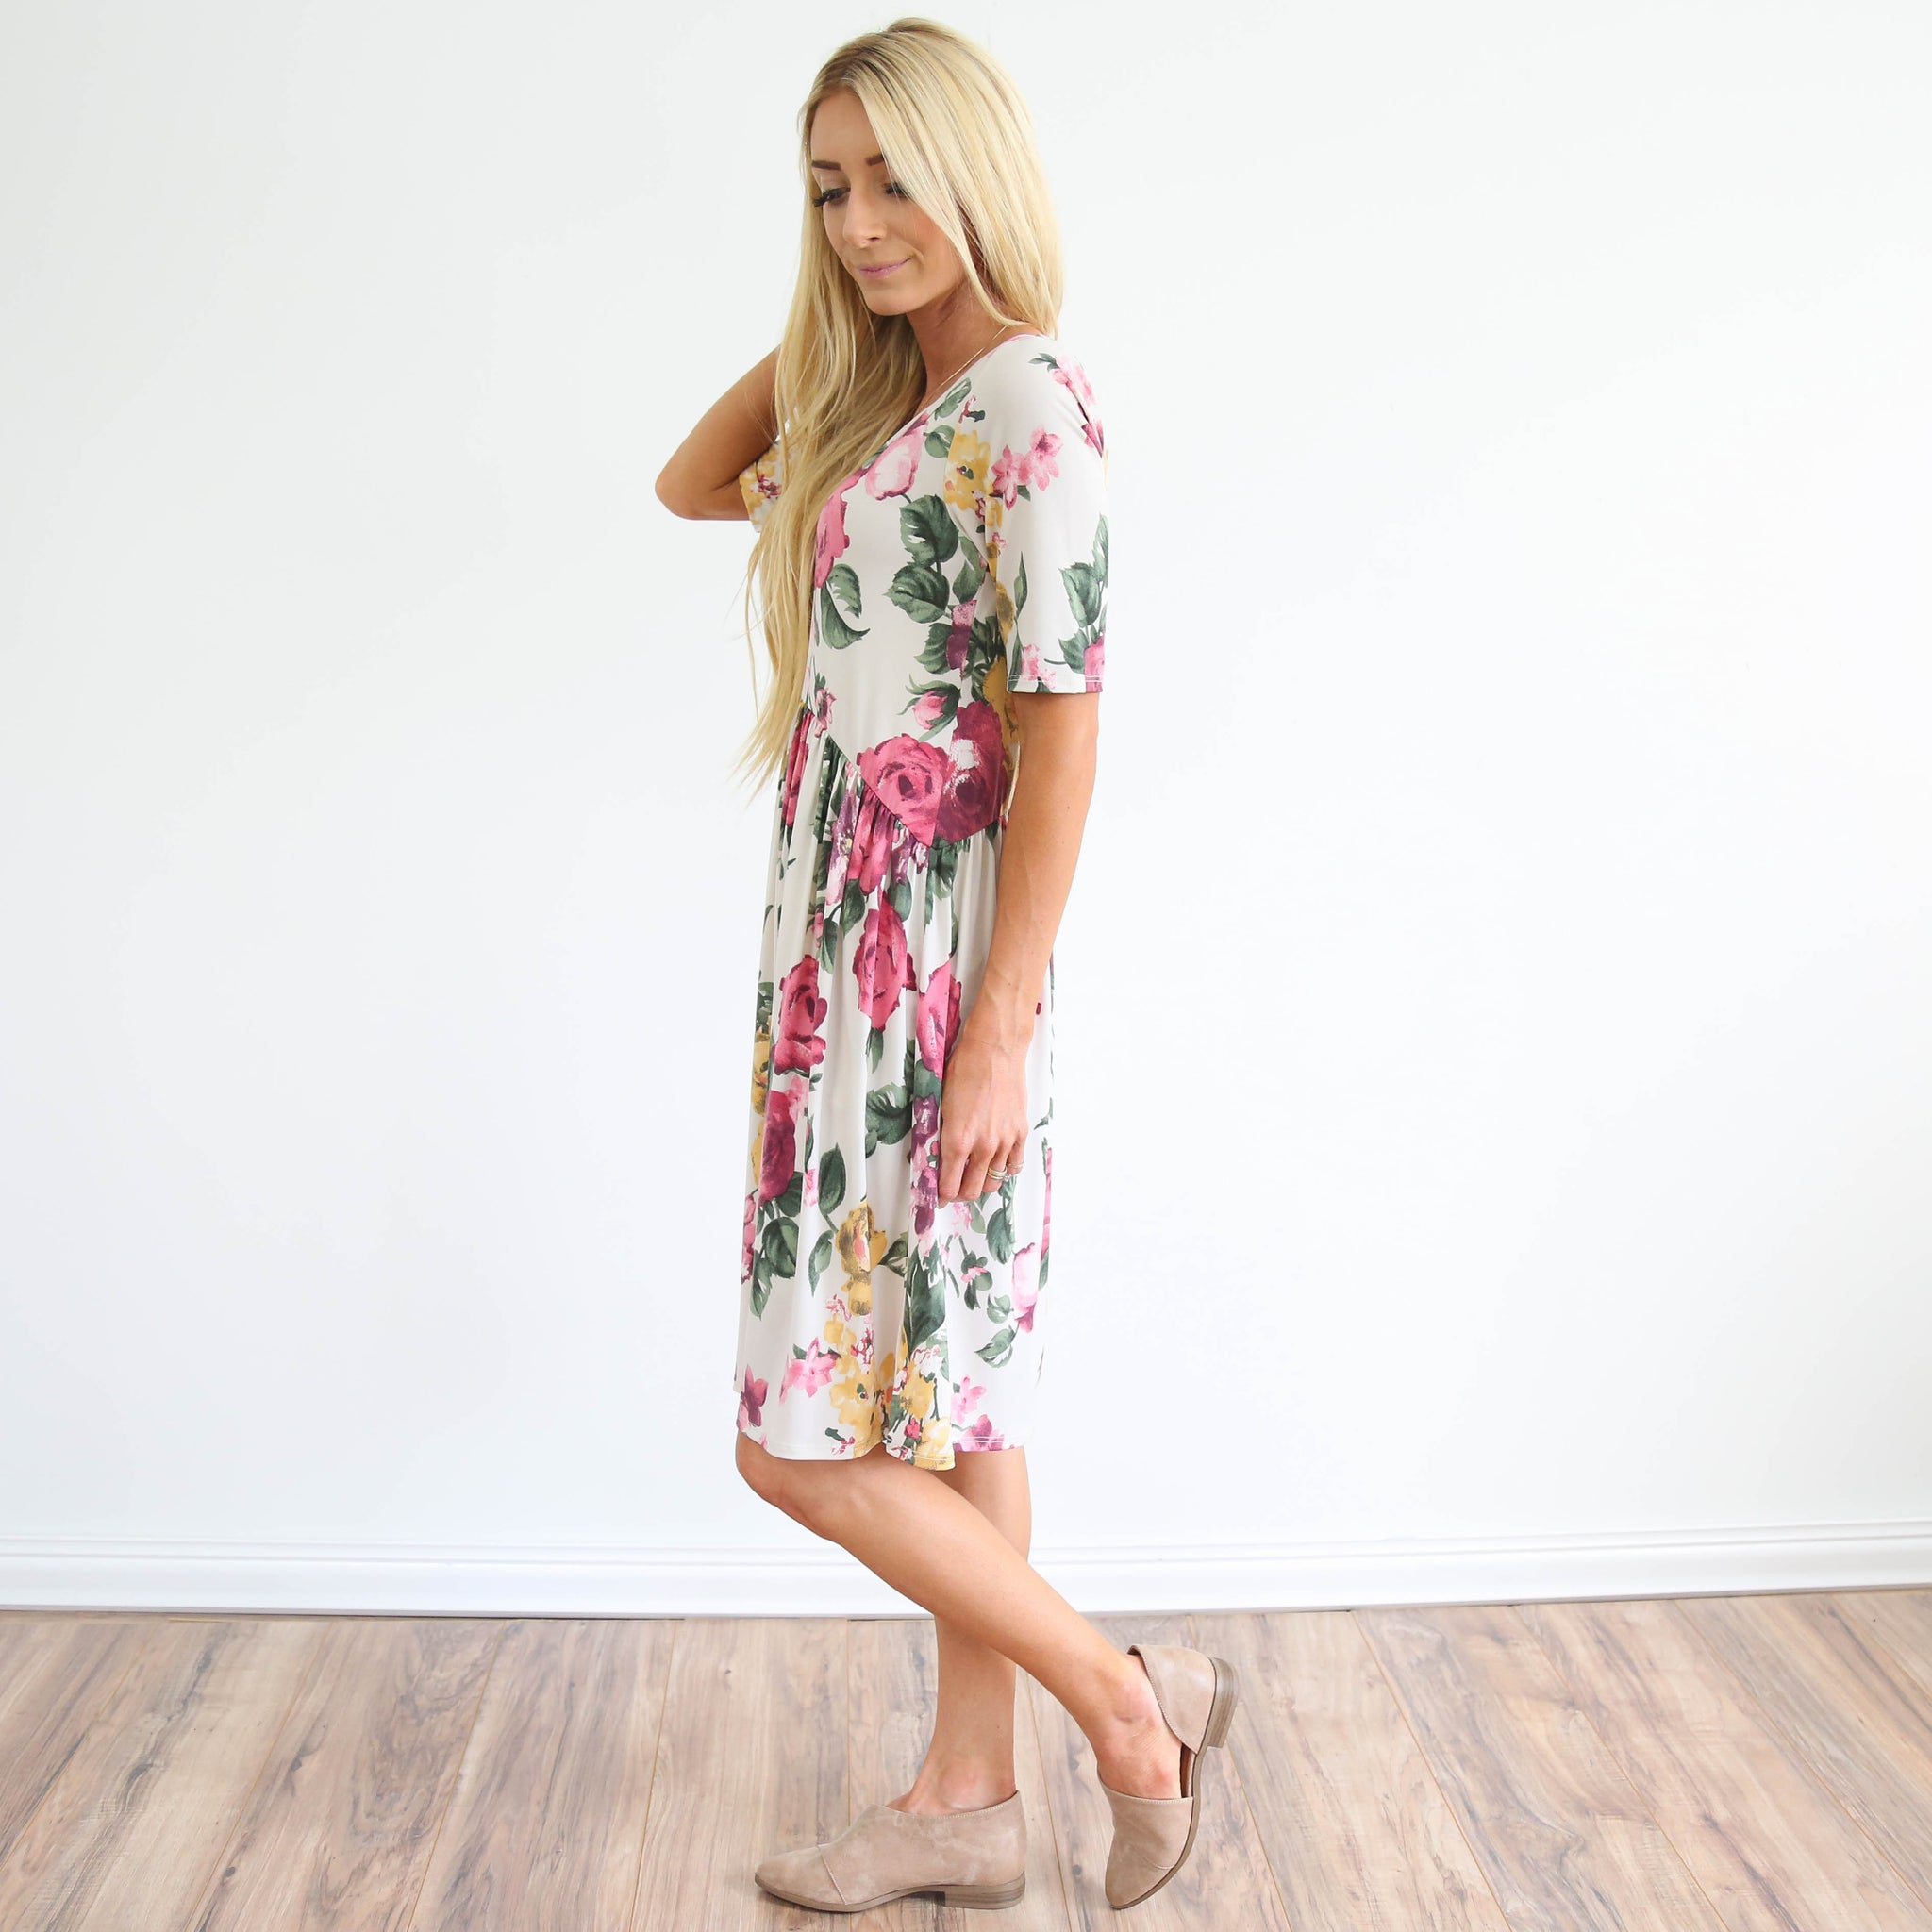 Joselle Flower Dress